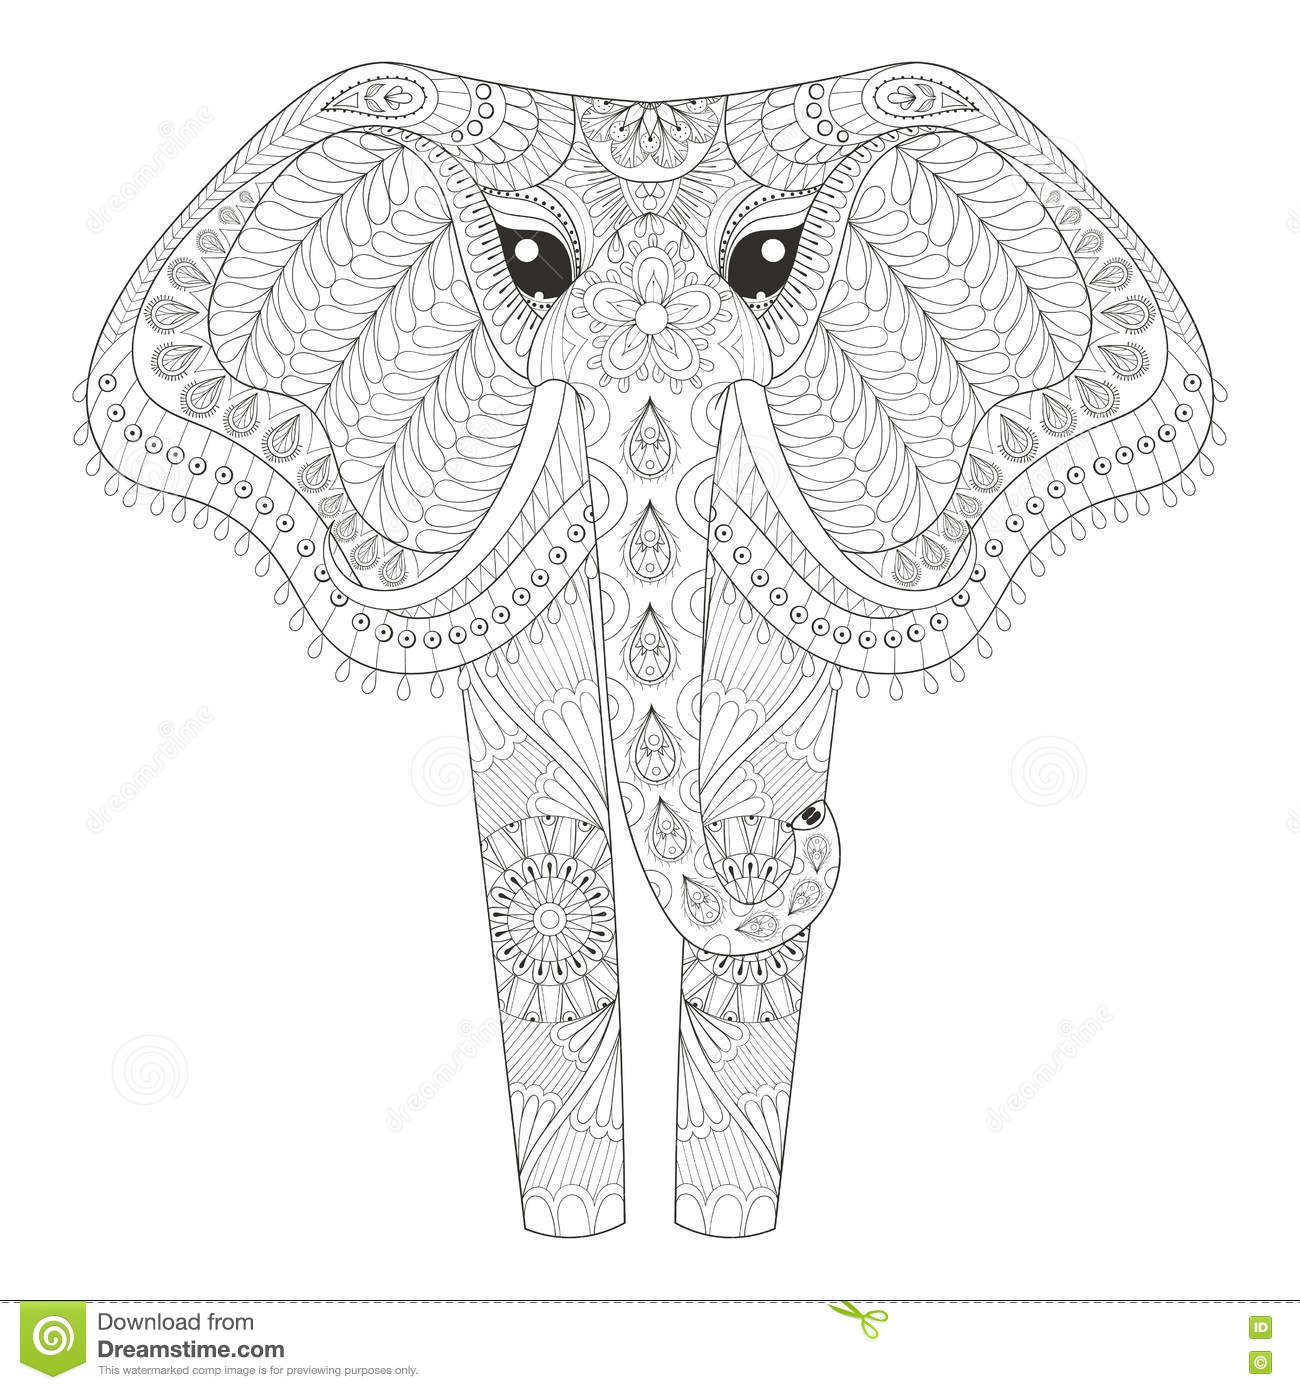 zentangle ornamental elephant for adult coloring pages hand dra royalty free stock images - Zentangle Coloring Pages